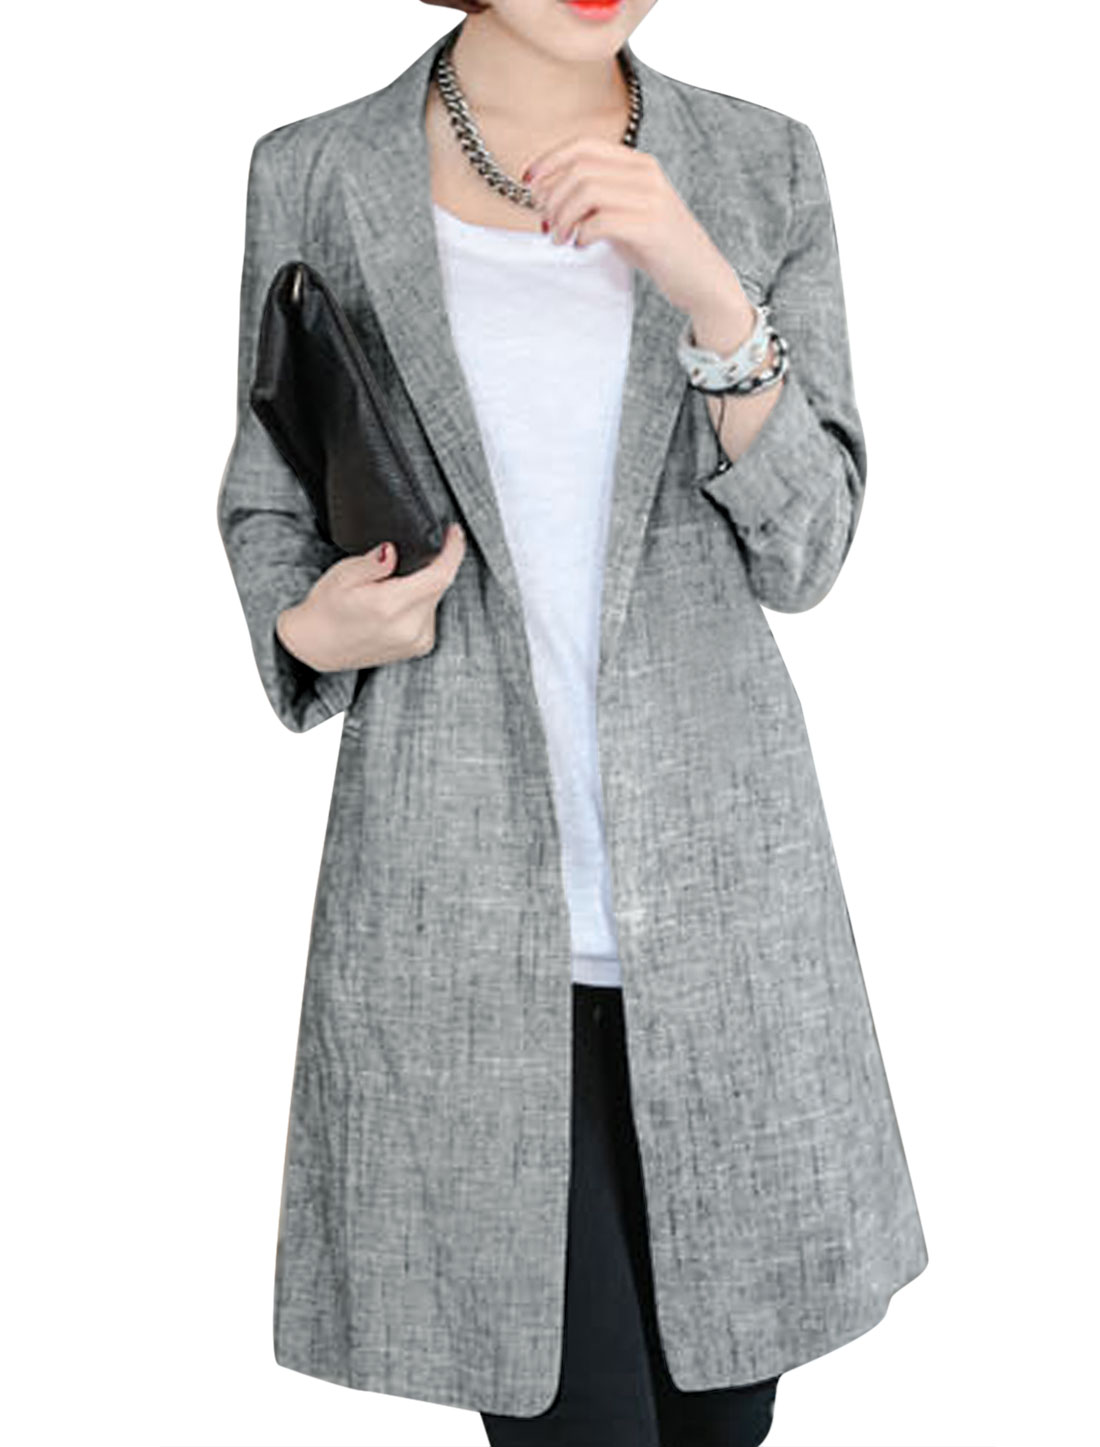 Lady Notched Lapel Front Opening Casual Trench Coat Light Gray S